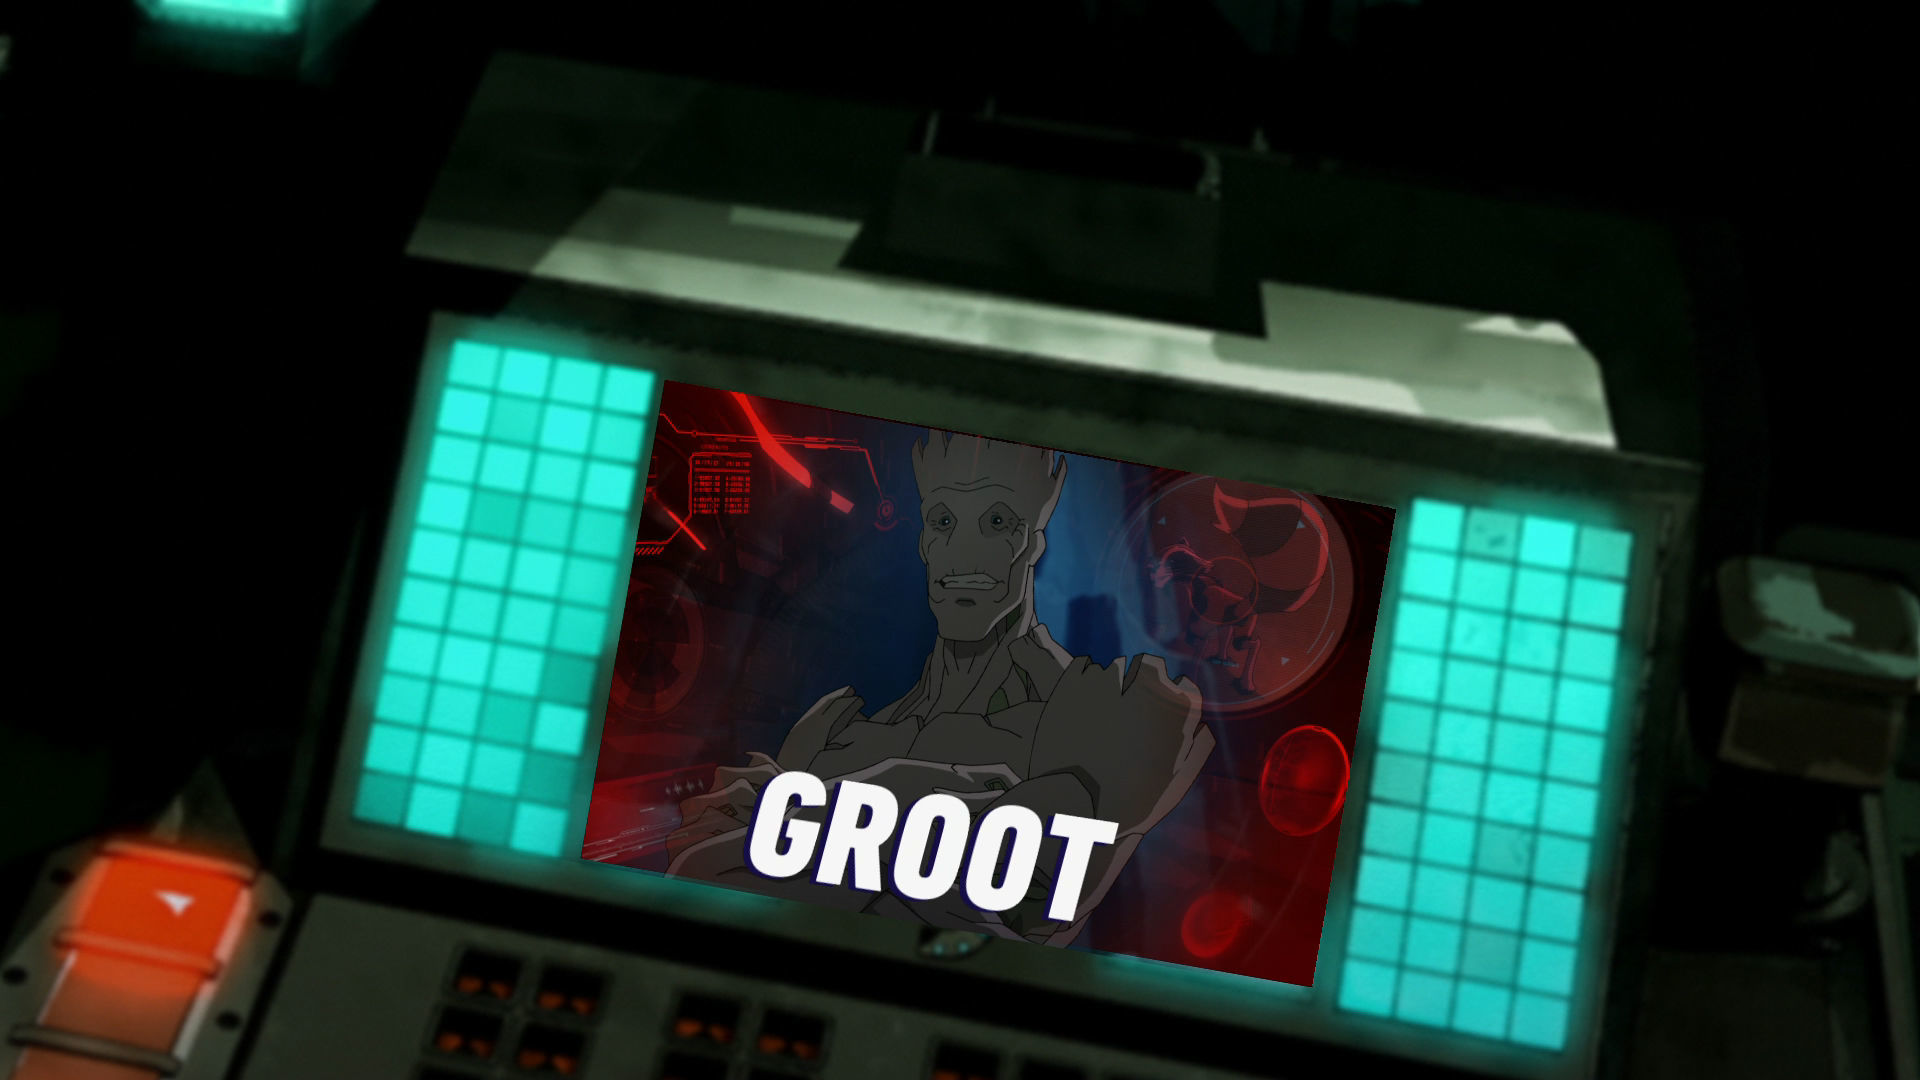 Groot's Translator